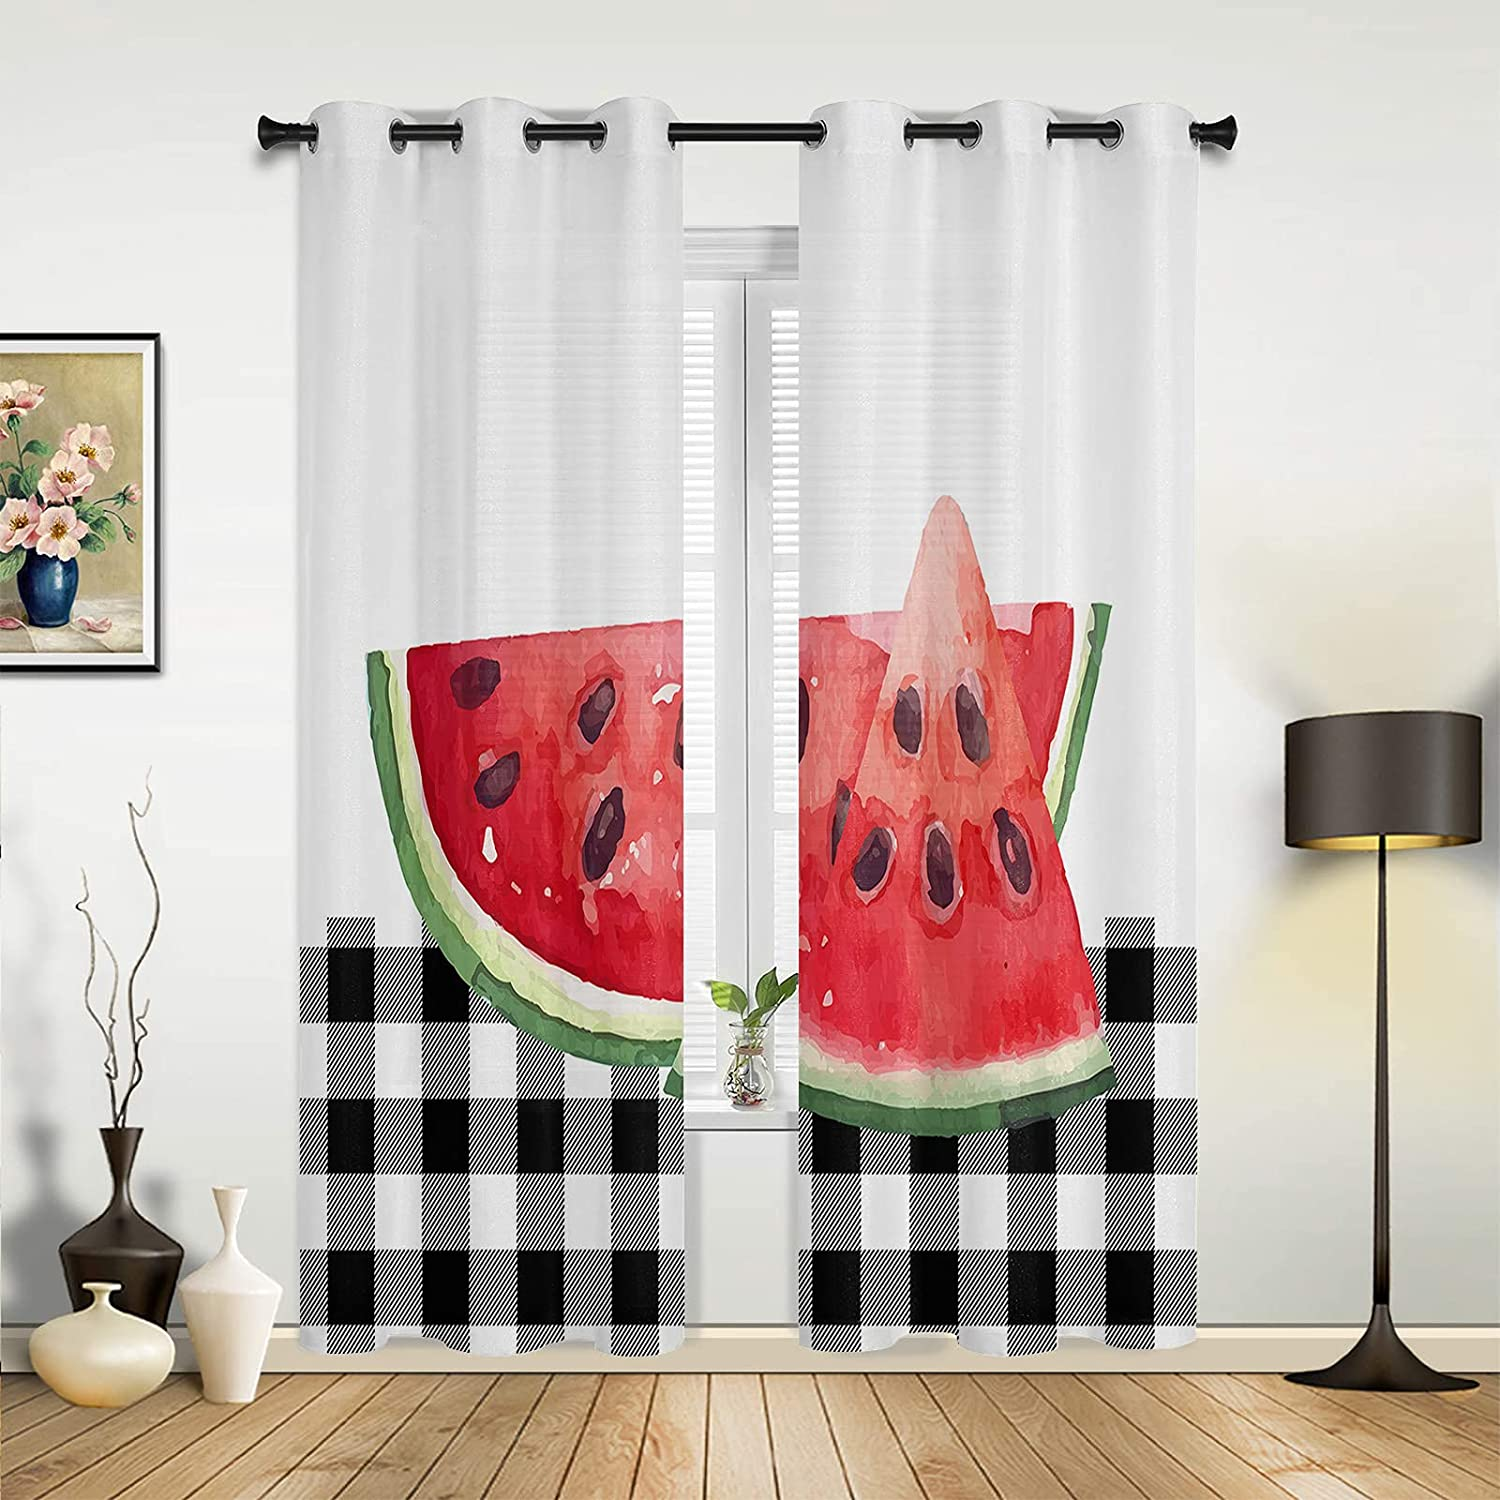 Outlet ☆ Free Shipping Window Sheer Curtains Max 81% OFF for Bedroom Summer Farm Waterm Living Room